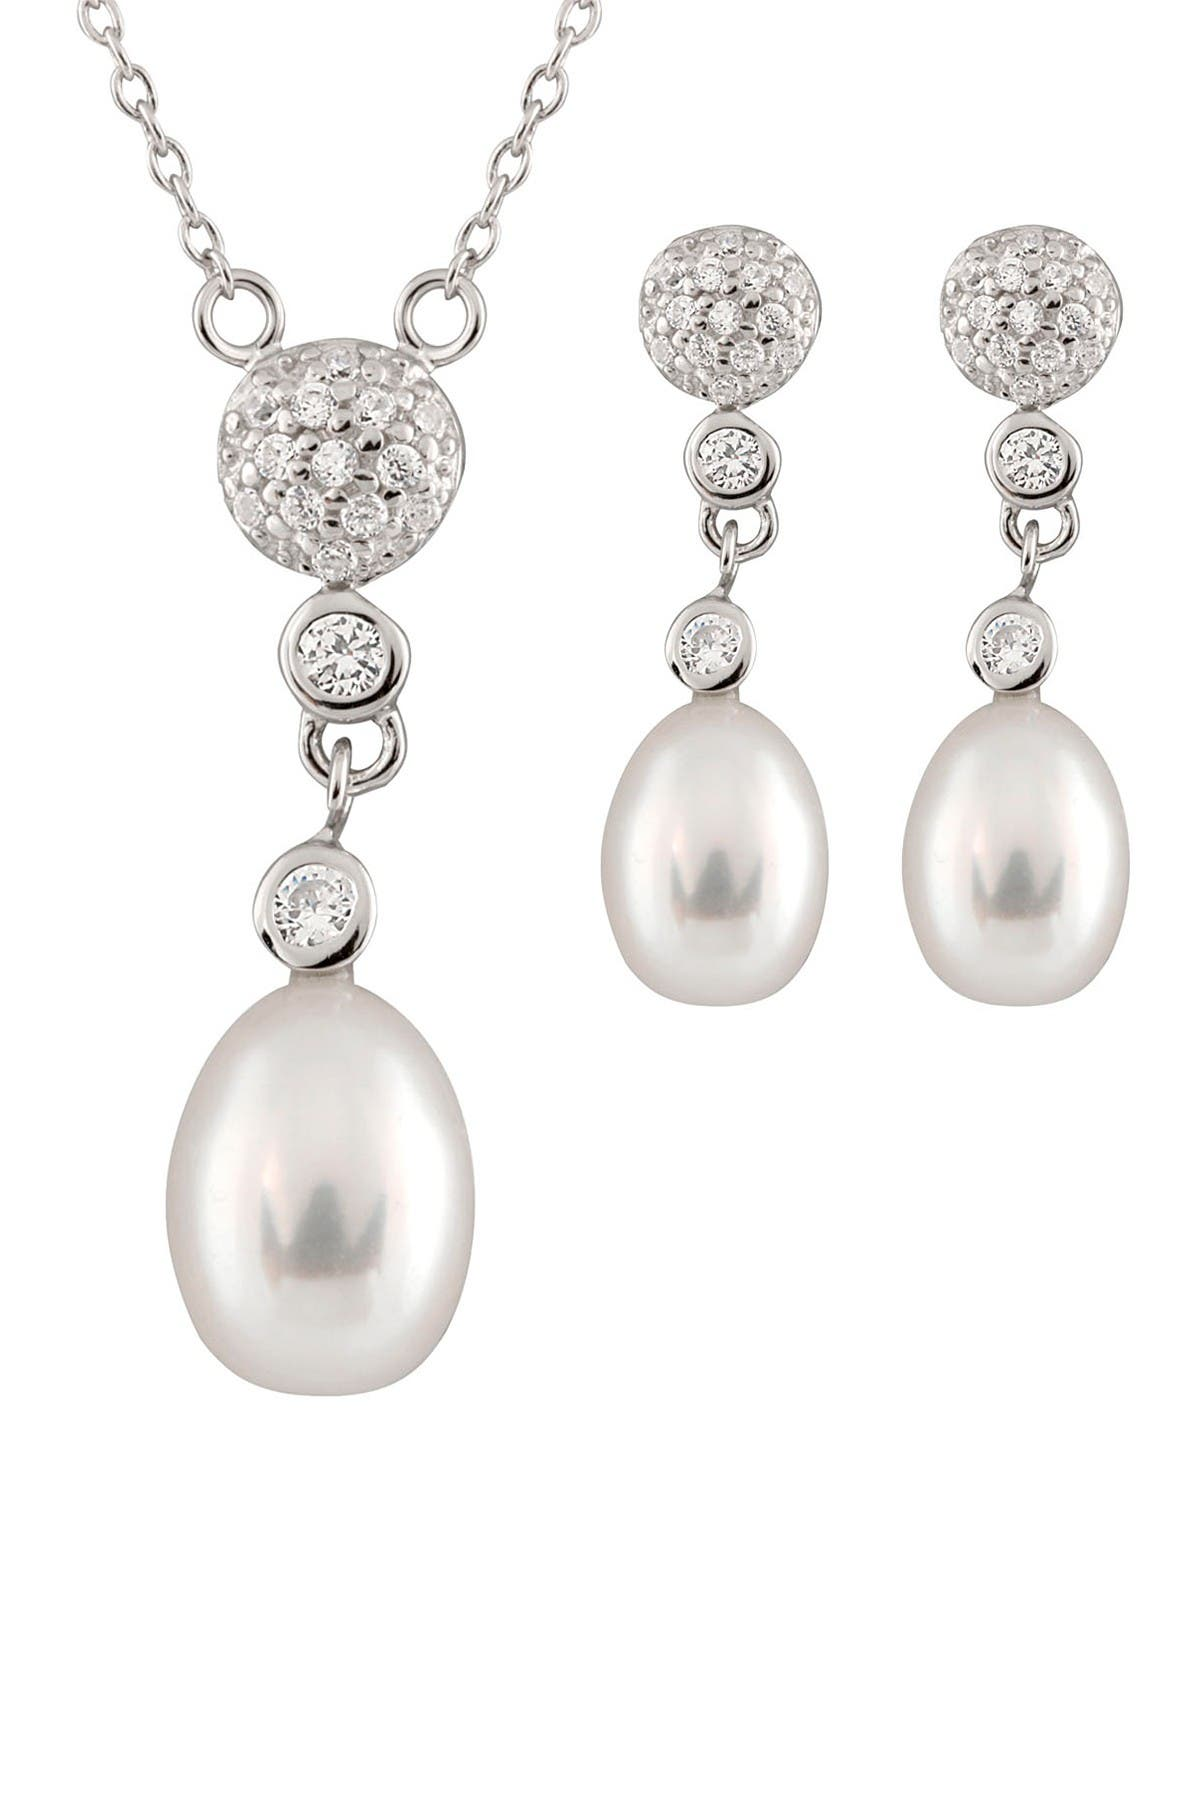 Image of Splendid Pearls 8-8.5mm White Freshwater Pearl CZ Cluster Pendant Necklace & Earrings Set